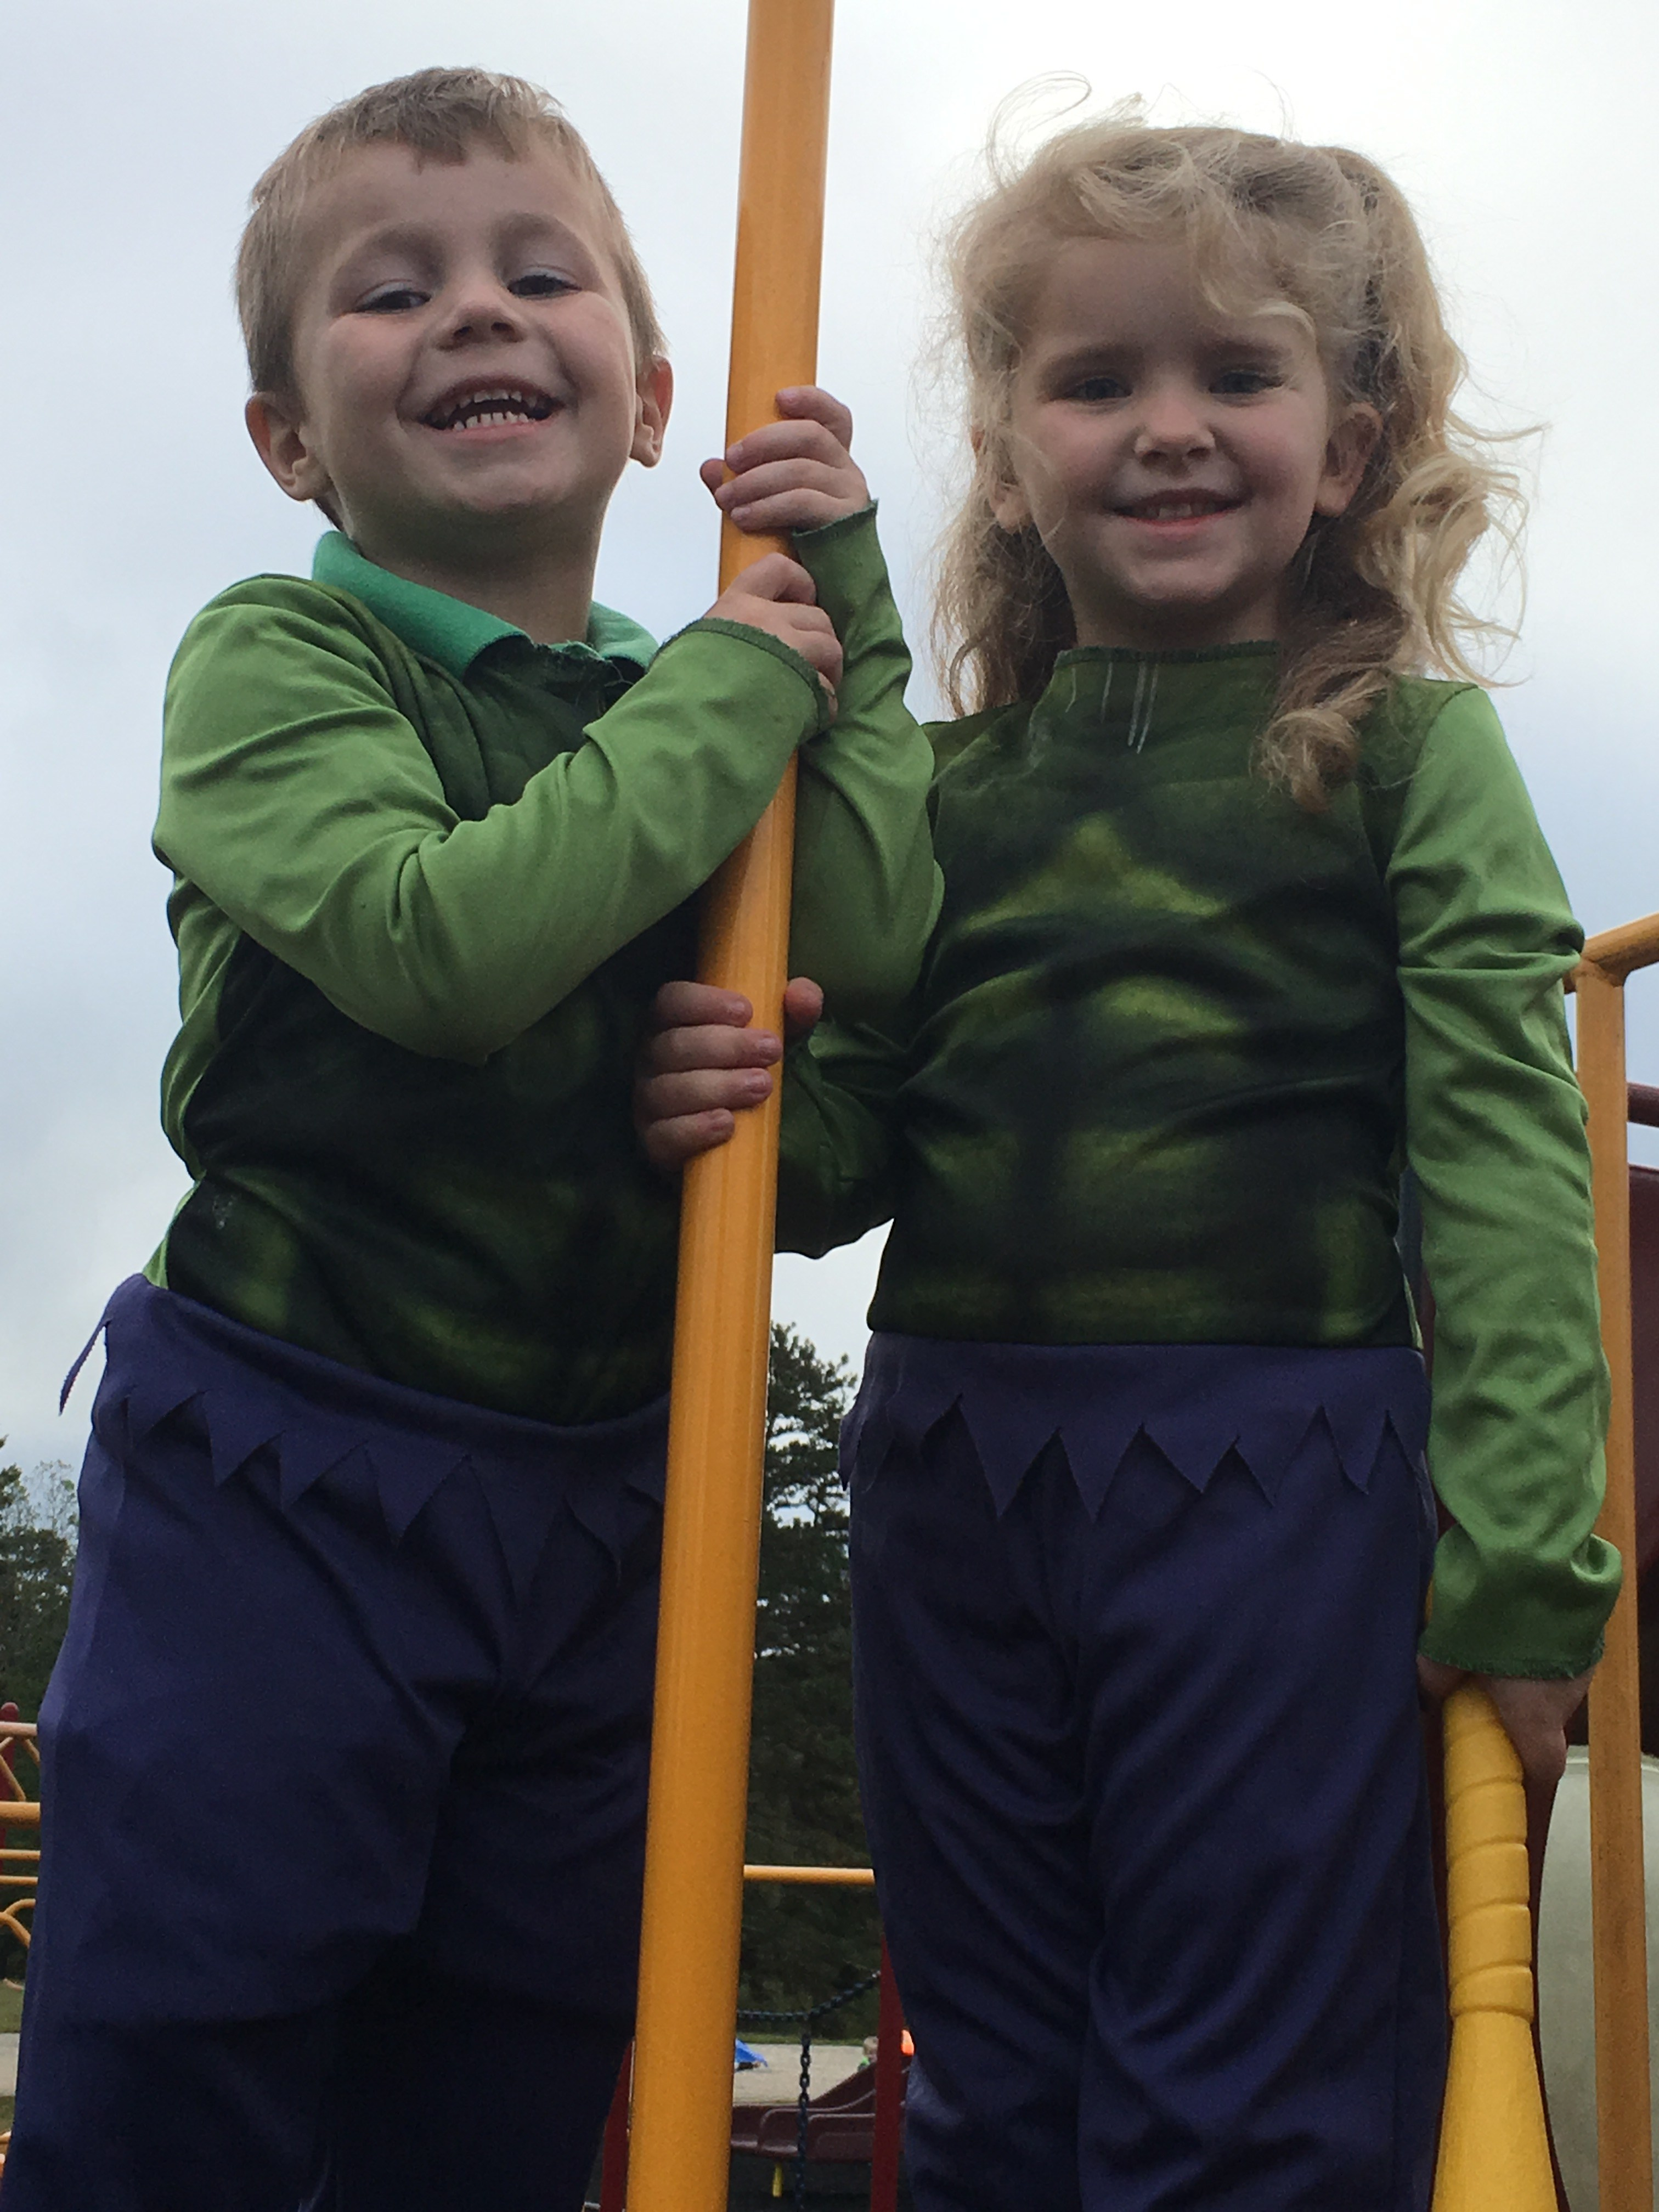 two students dressed as the hulk on the playground